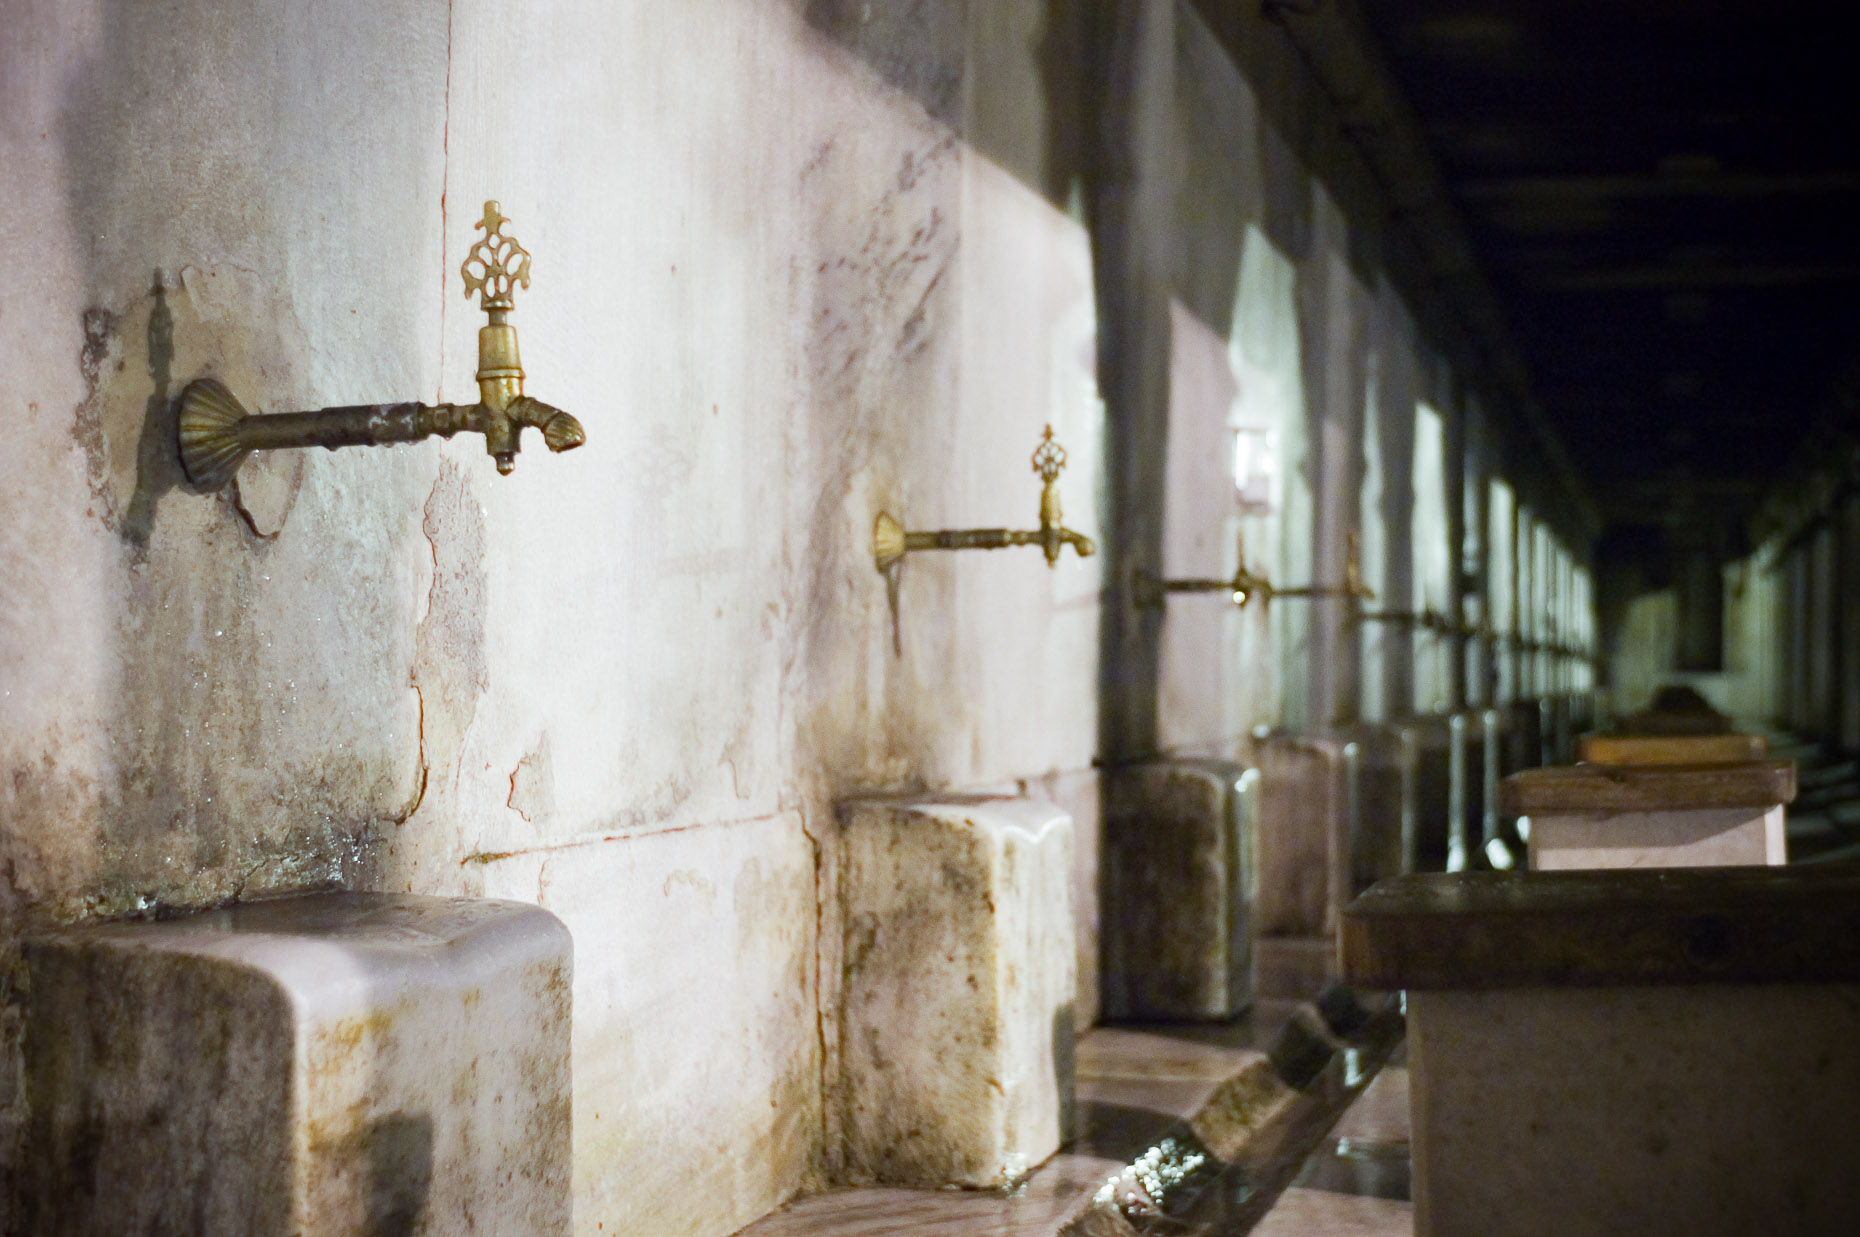 Water spigots for washing at Blue Mosque in Istanbul Turkey.